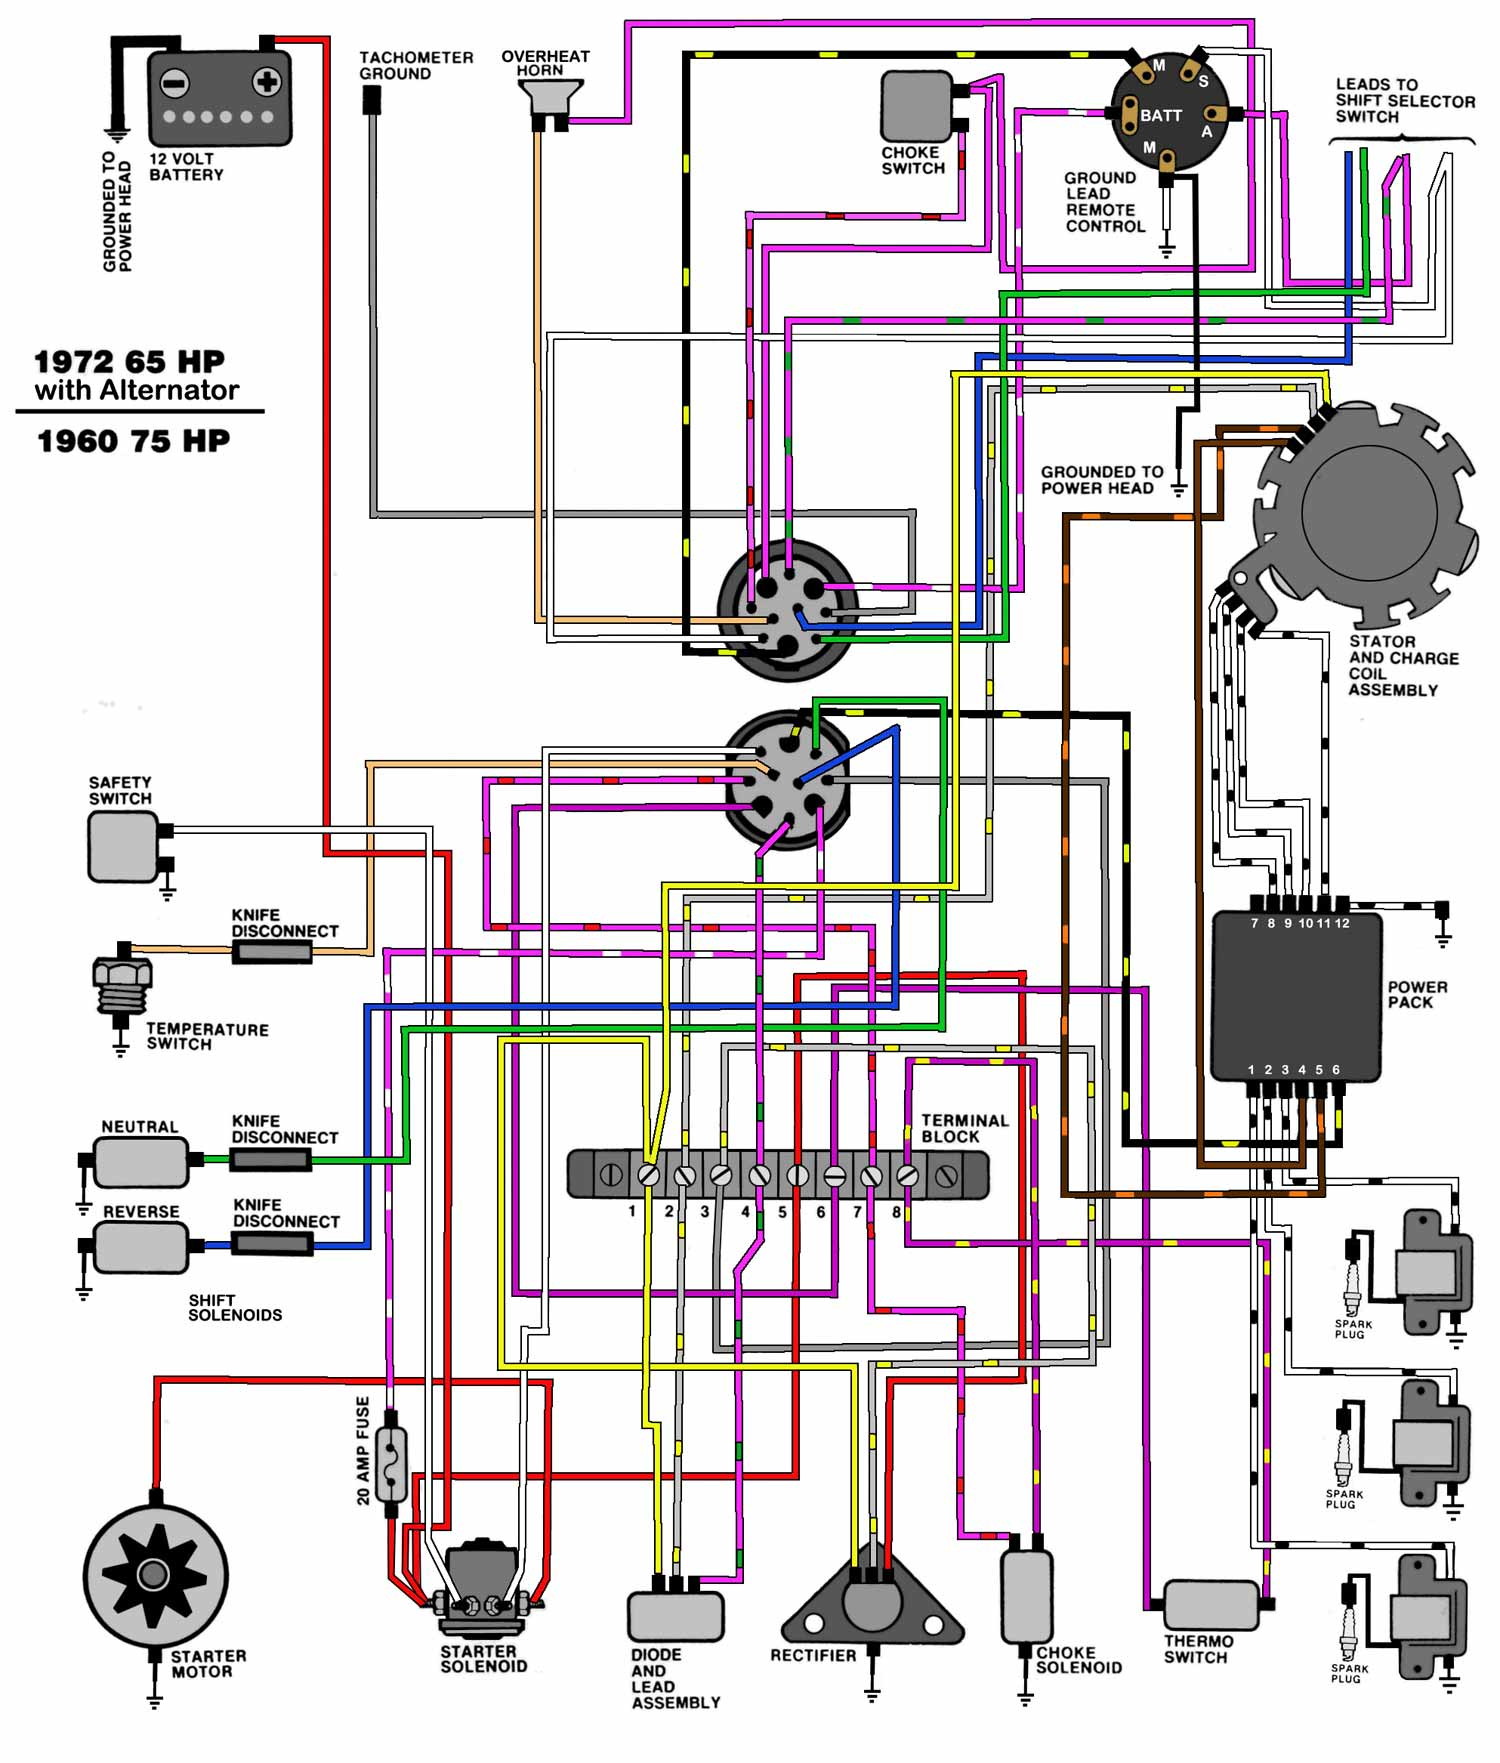 evinrude johnson outboard wiring diagrams -- mastertech ... evinrude wiring diagrams wiring diagrams for evinrude 55 hp boat motor